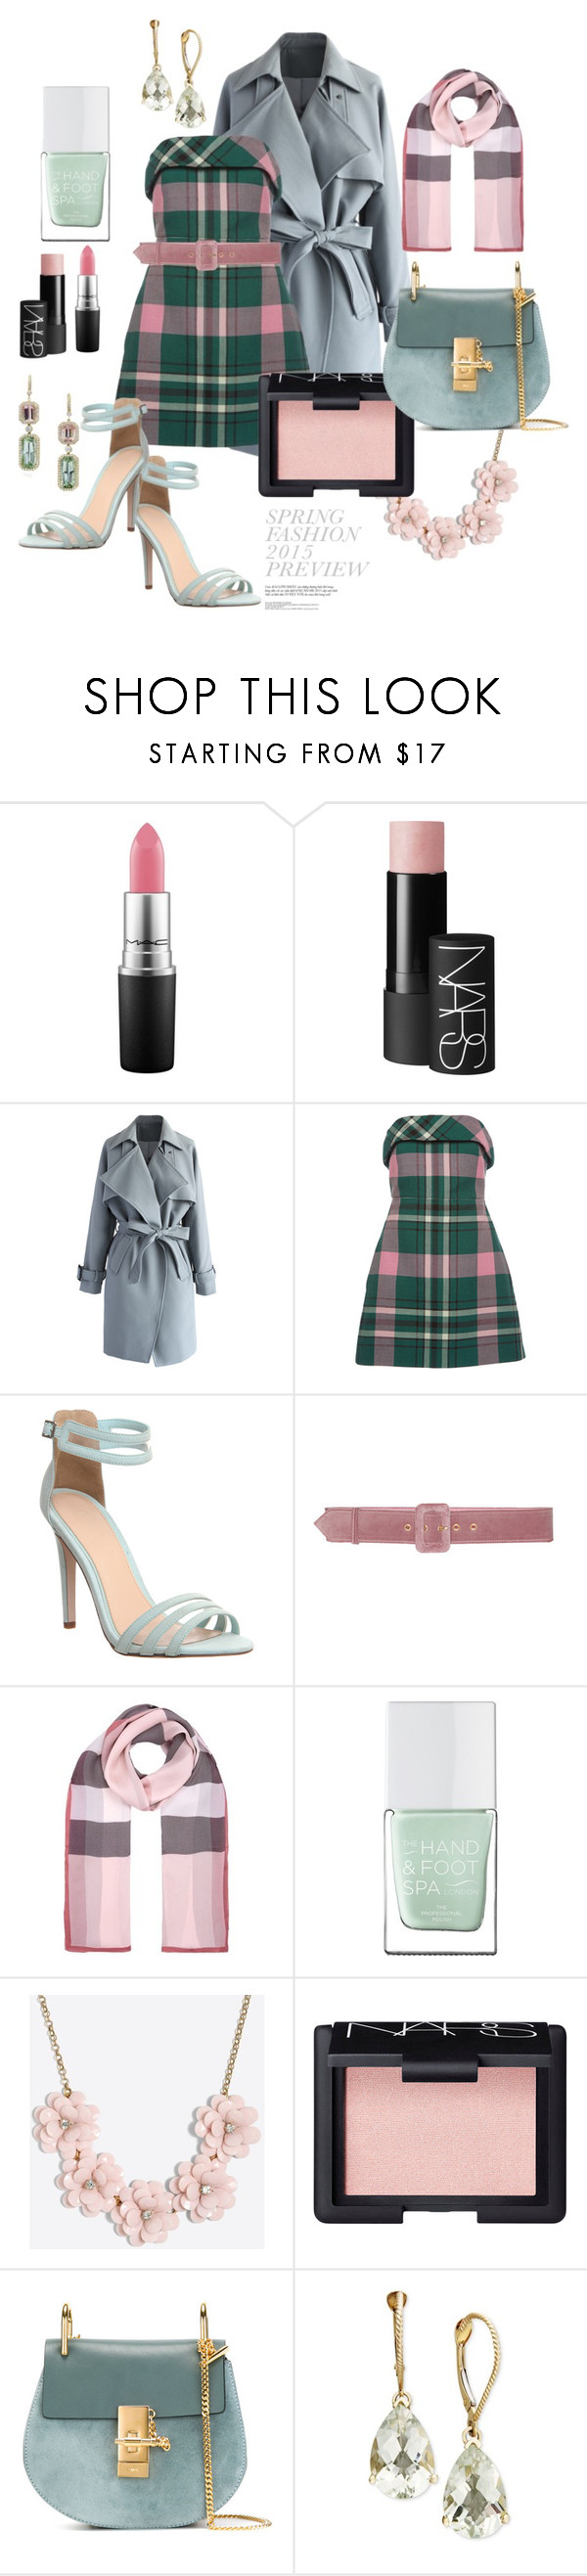 """Spring Prep"" by egchee ❤ liked on Polyvore featuring MAC Cosmetics, NARS Cosmetics, Chicwish, Philosophy di Lorenzo Serafini, Office, Elie Saab, Burberry, The Hand & Foot Spa, J.Crew and Chloé"